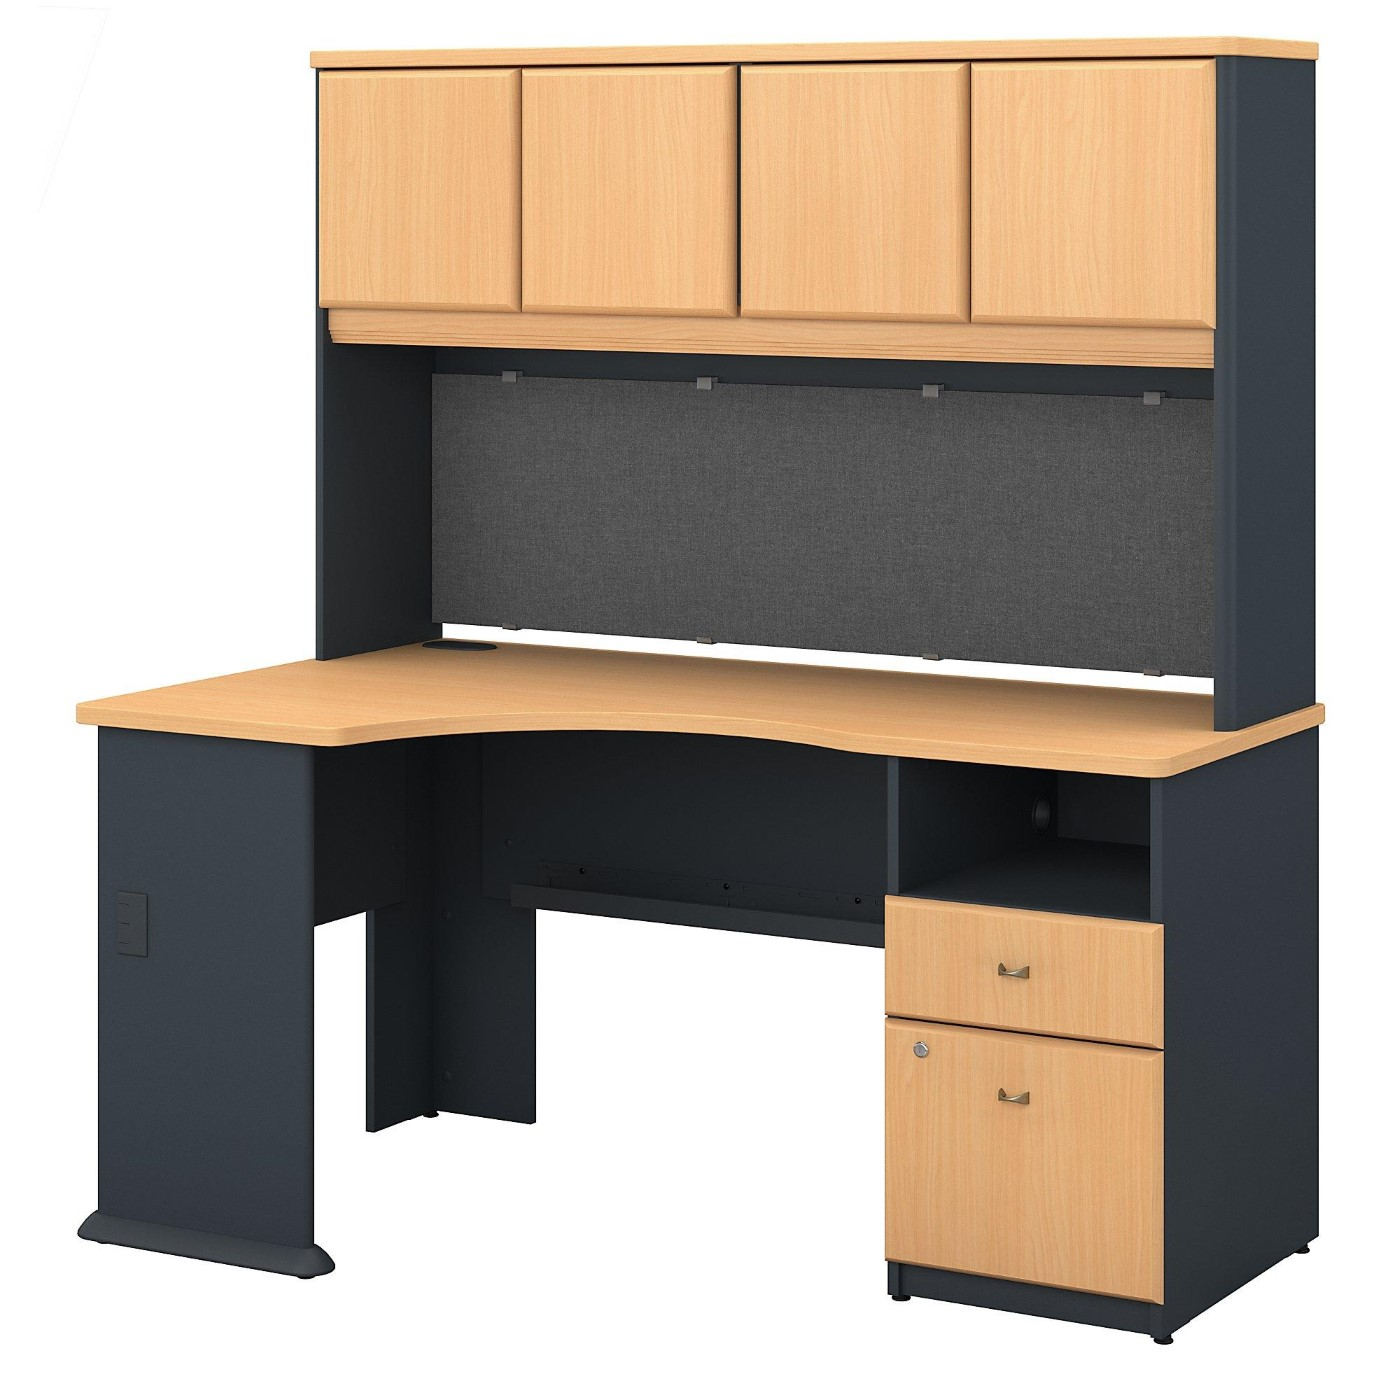 <font color=#c60><b>BUSH BUSINESS FURNITURE SERIES A 60W CORNER DESK WITH HUTCH AND 2 DRAWER PEDESTAL #EH-SRA007BE. FREE SHIPPING</font></b>